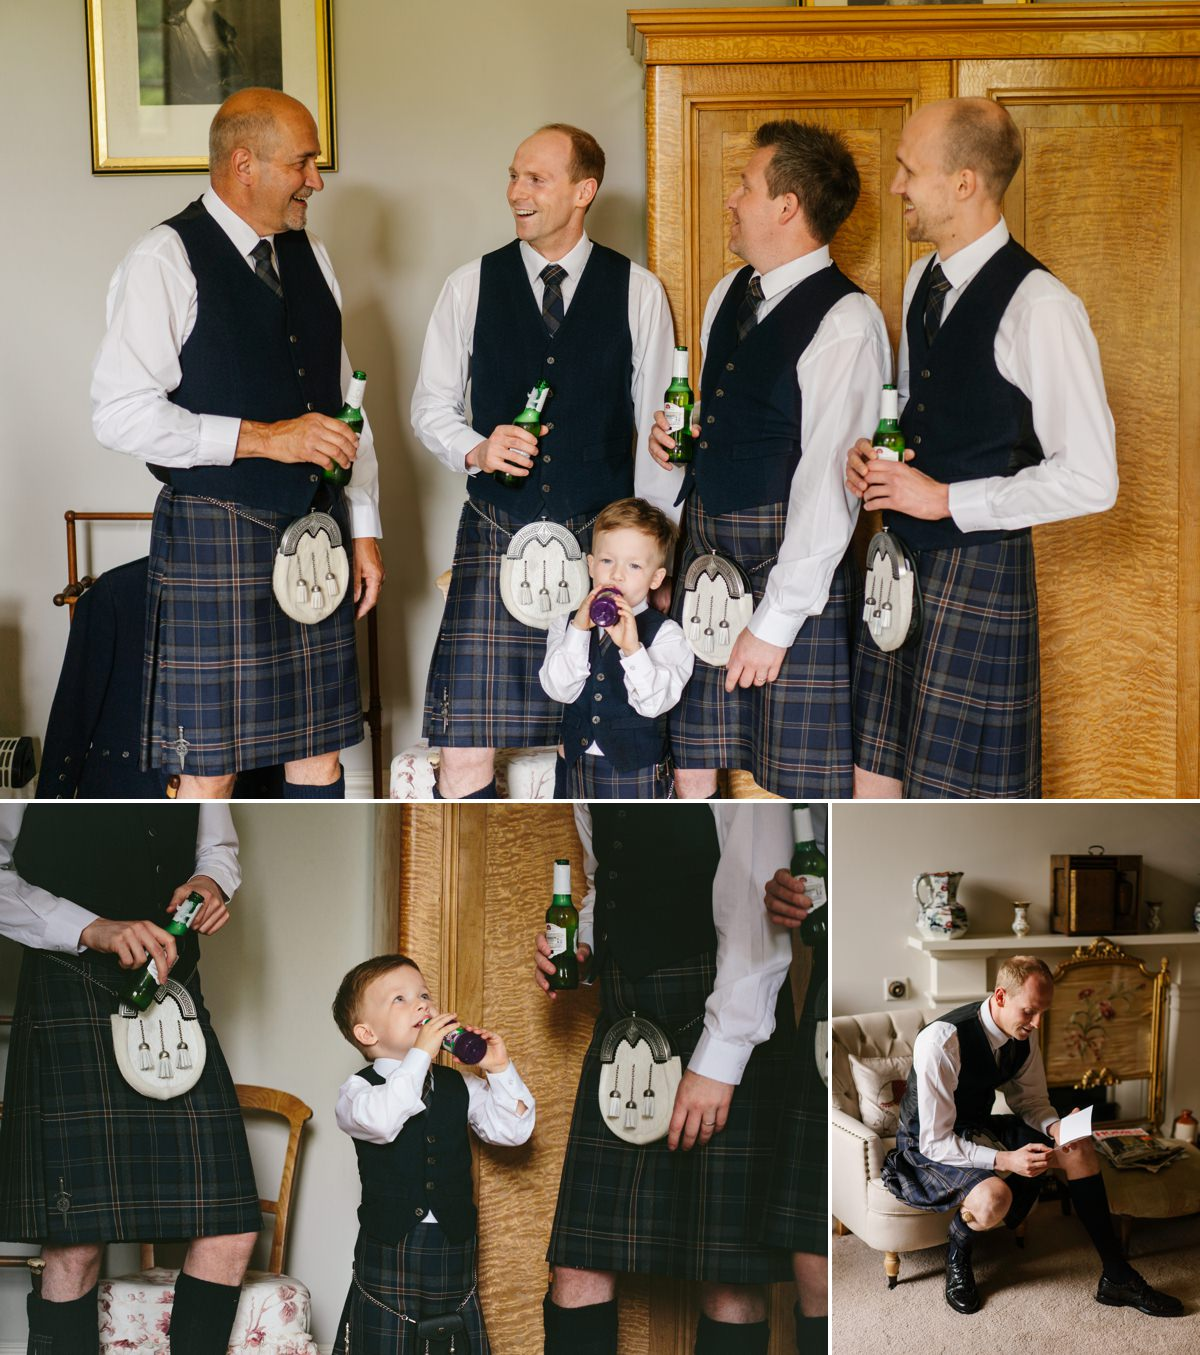 Scotland wedding groom in kilt Errol Park Estate www.benandhopeweddings.com.au